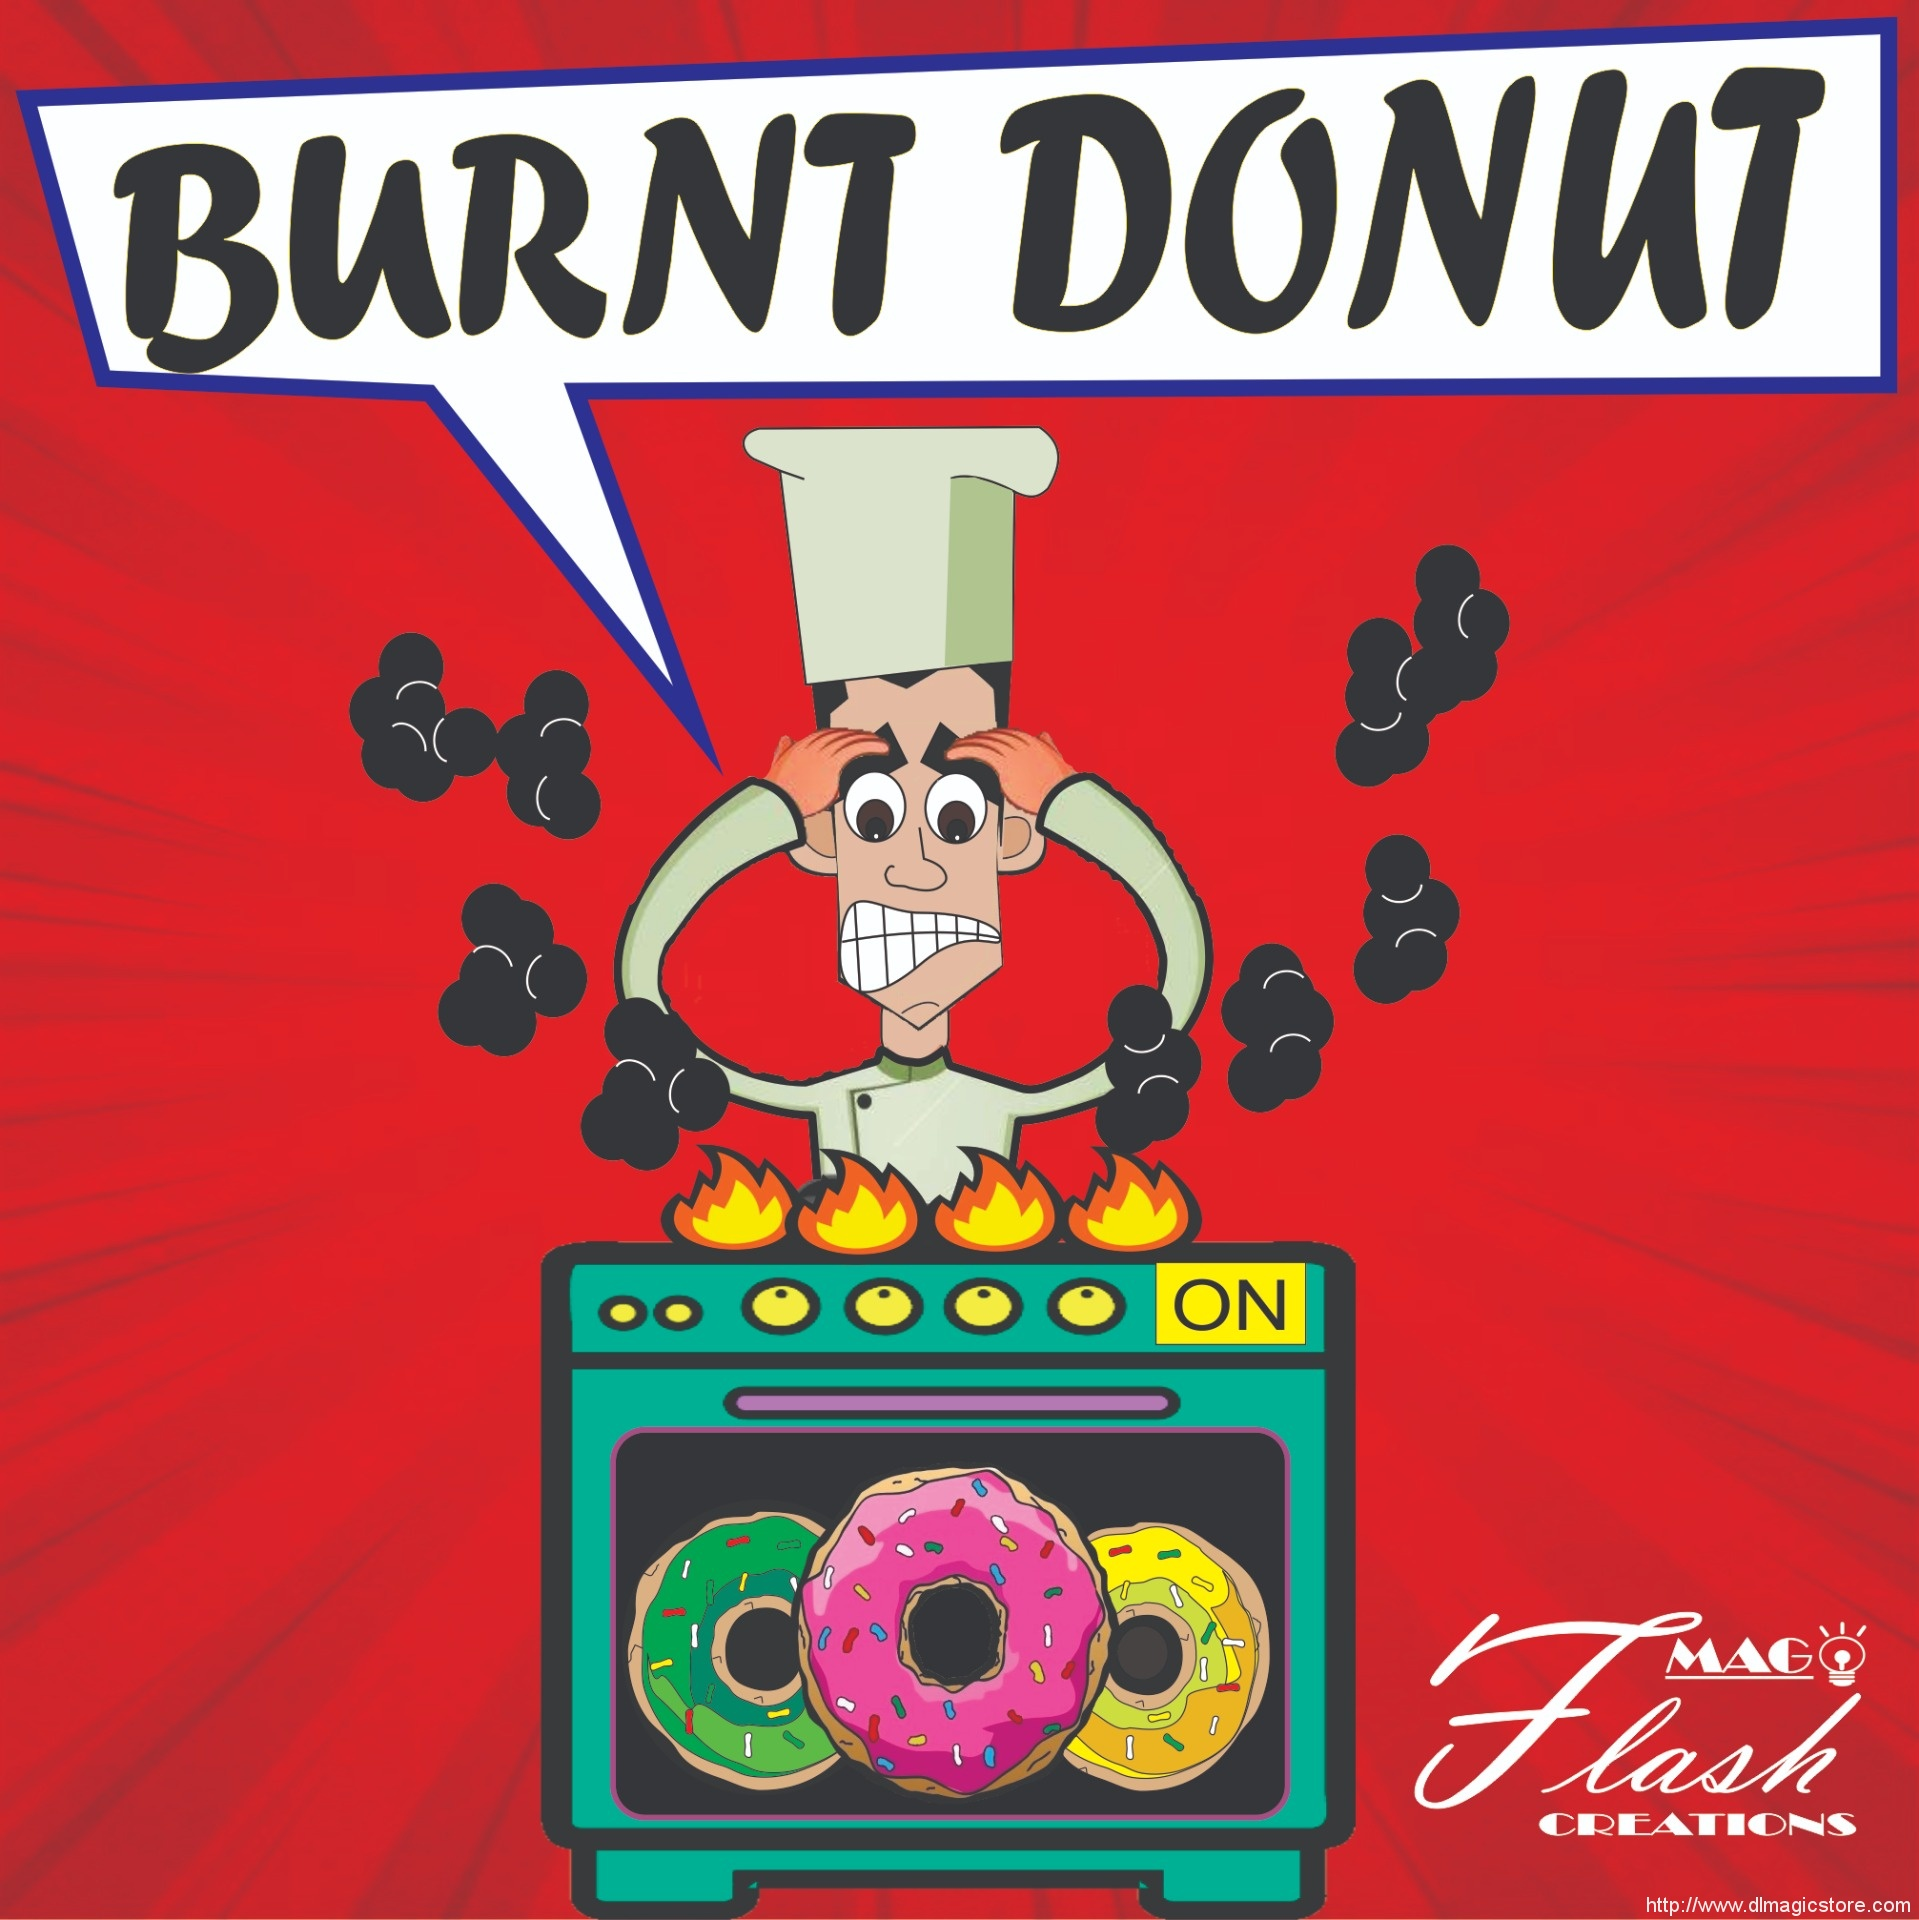 Donuts Burnt by Mago Flash Argentina